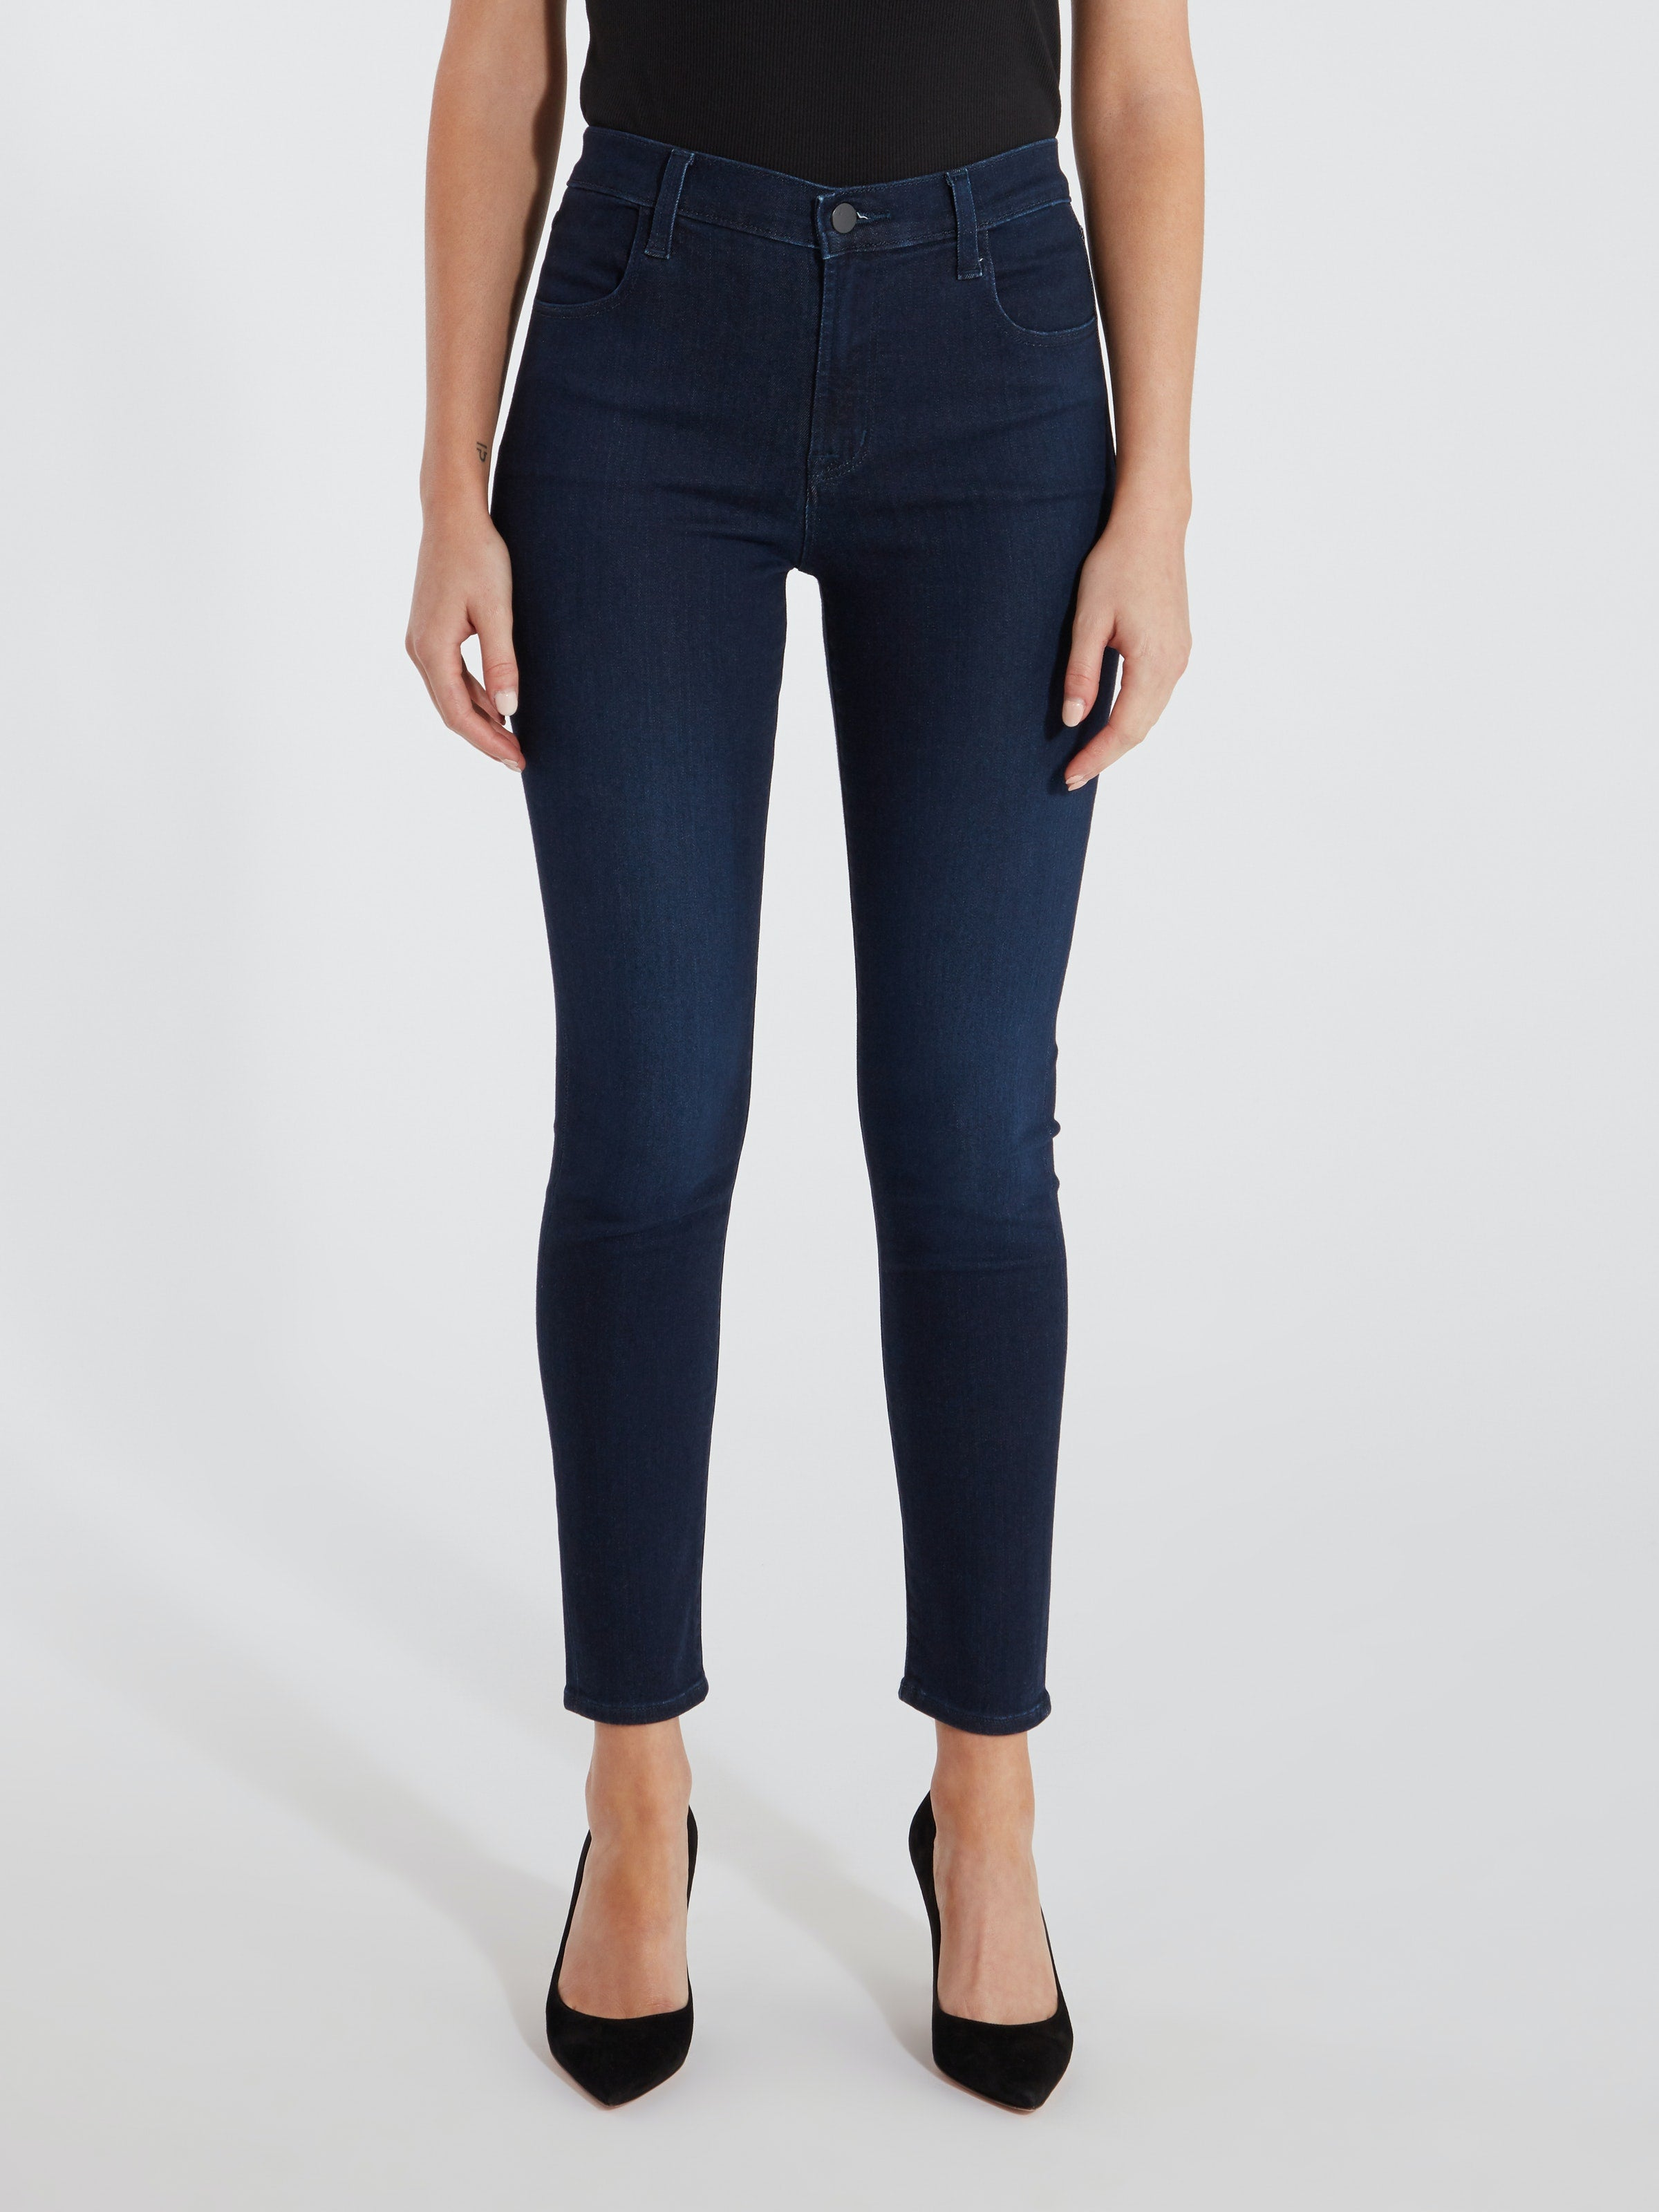 Alana High Rise Skinny Ankle Jean in Chroma